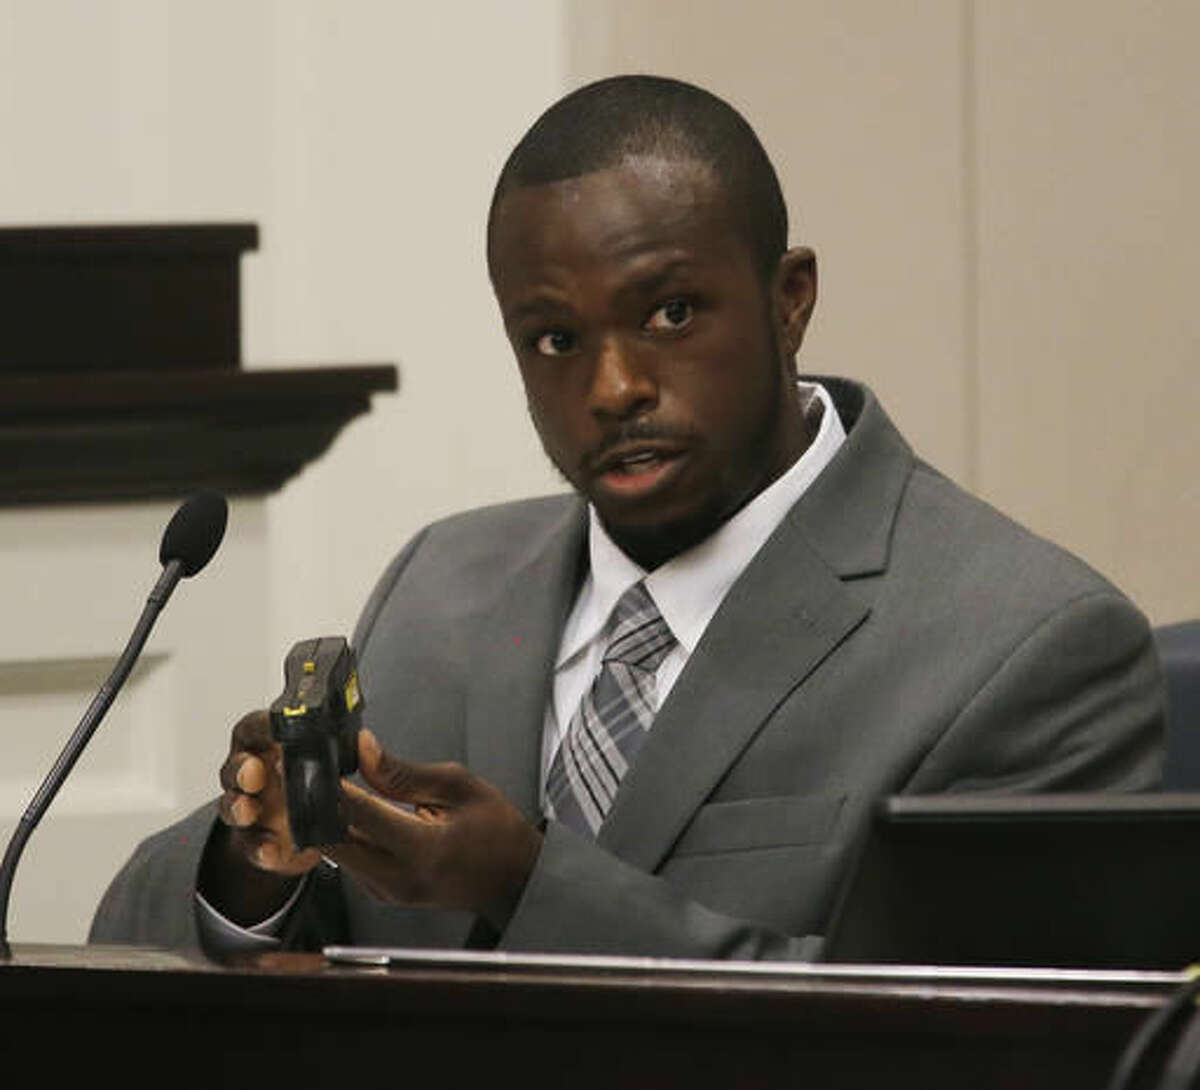 Samuel Stewart a DNA analyst from the South Carolina Law Enforcement Division speaks during the murder trial of former North Charleston Police Officer Michael Slager, Thursday, Nov. 10, 2016, in Charleston, S.C. Slager is on trial facing a murder charge in the shooting death of Walter Scott, who was gunned down after he fled from a traffic stop. Ninth Circuit Solicitor Scarlett Wilson is seen at left. (Grace Beahm/Post and Courier via AP, Pool)